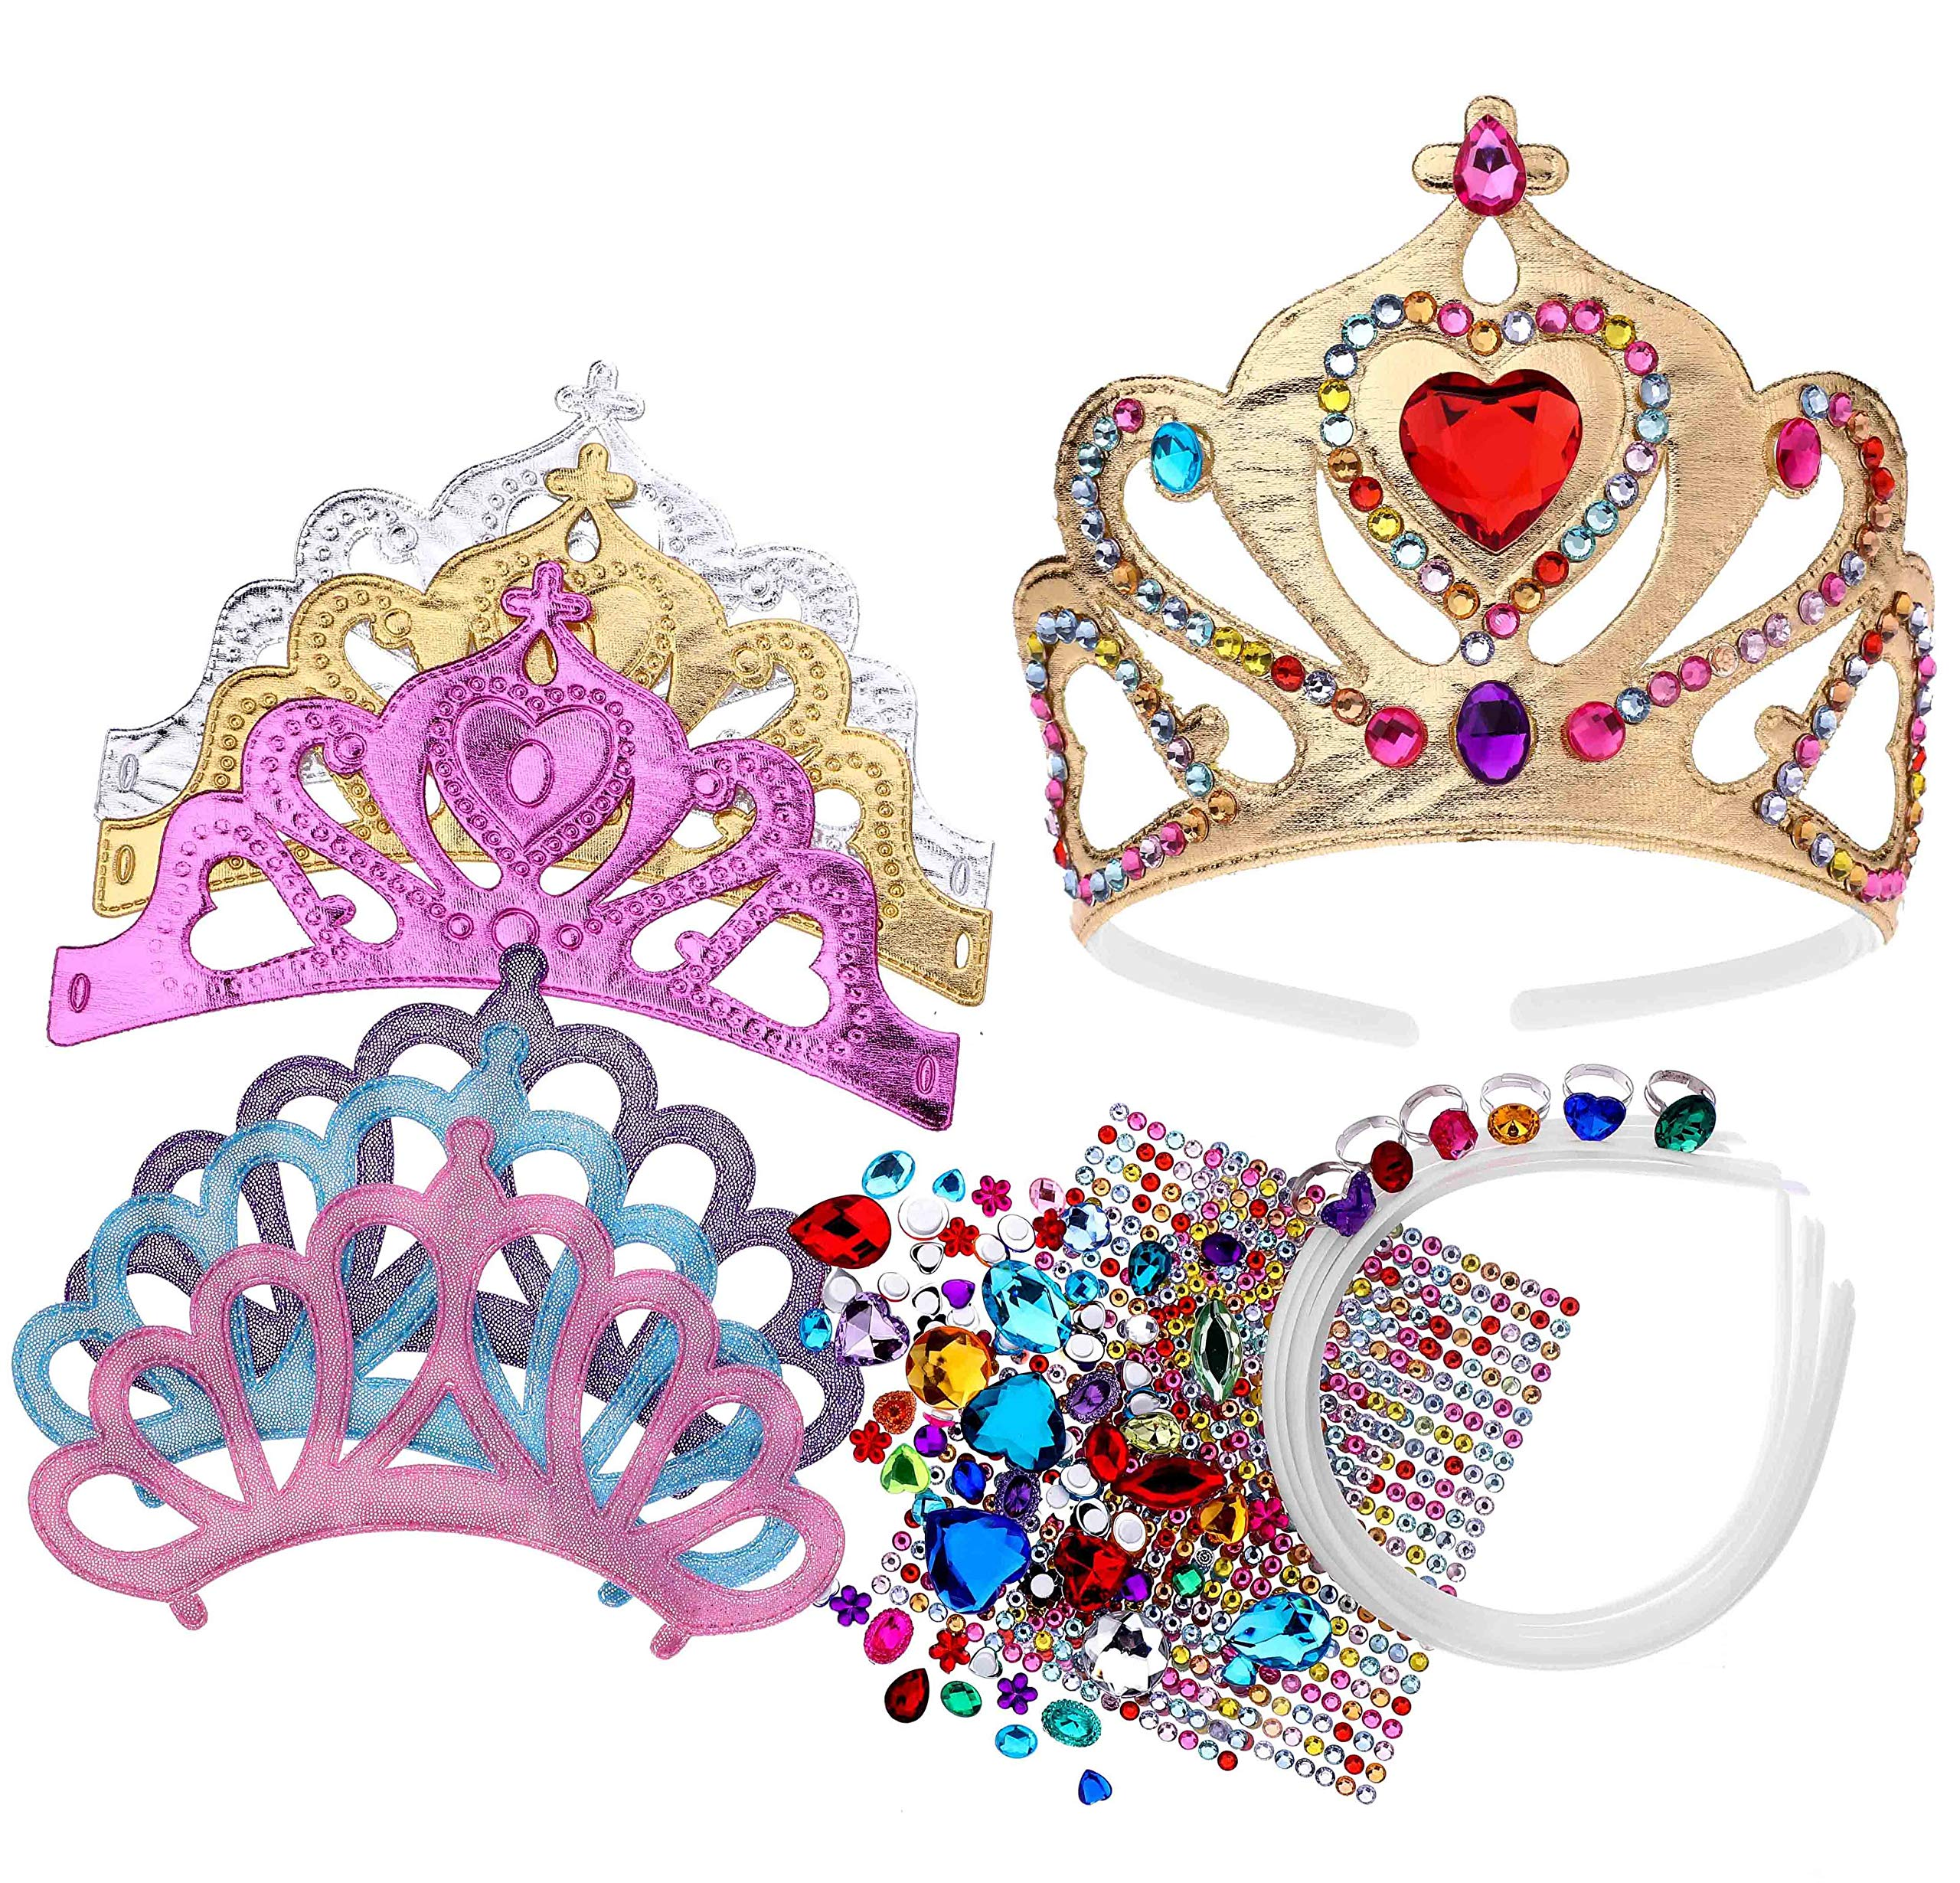 Foam Princess Tiaras and Crowns, Making Your Own Tiaras with Rhinestone stickers, Princess Party Favors for Kids (pack of 6) by Richness